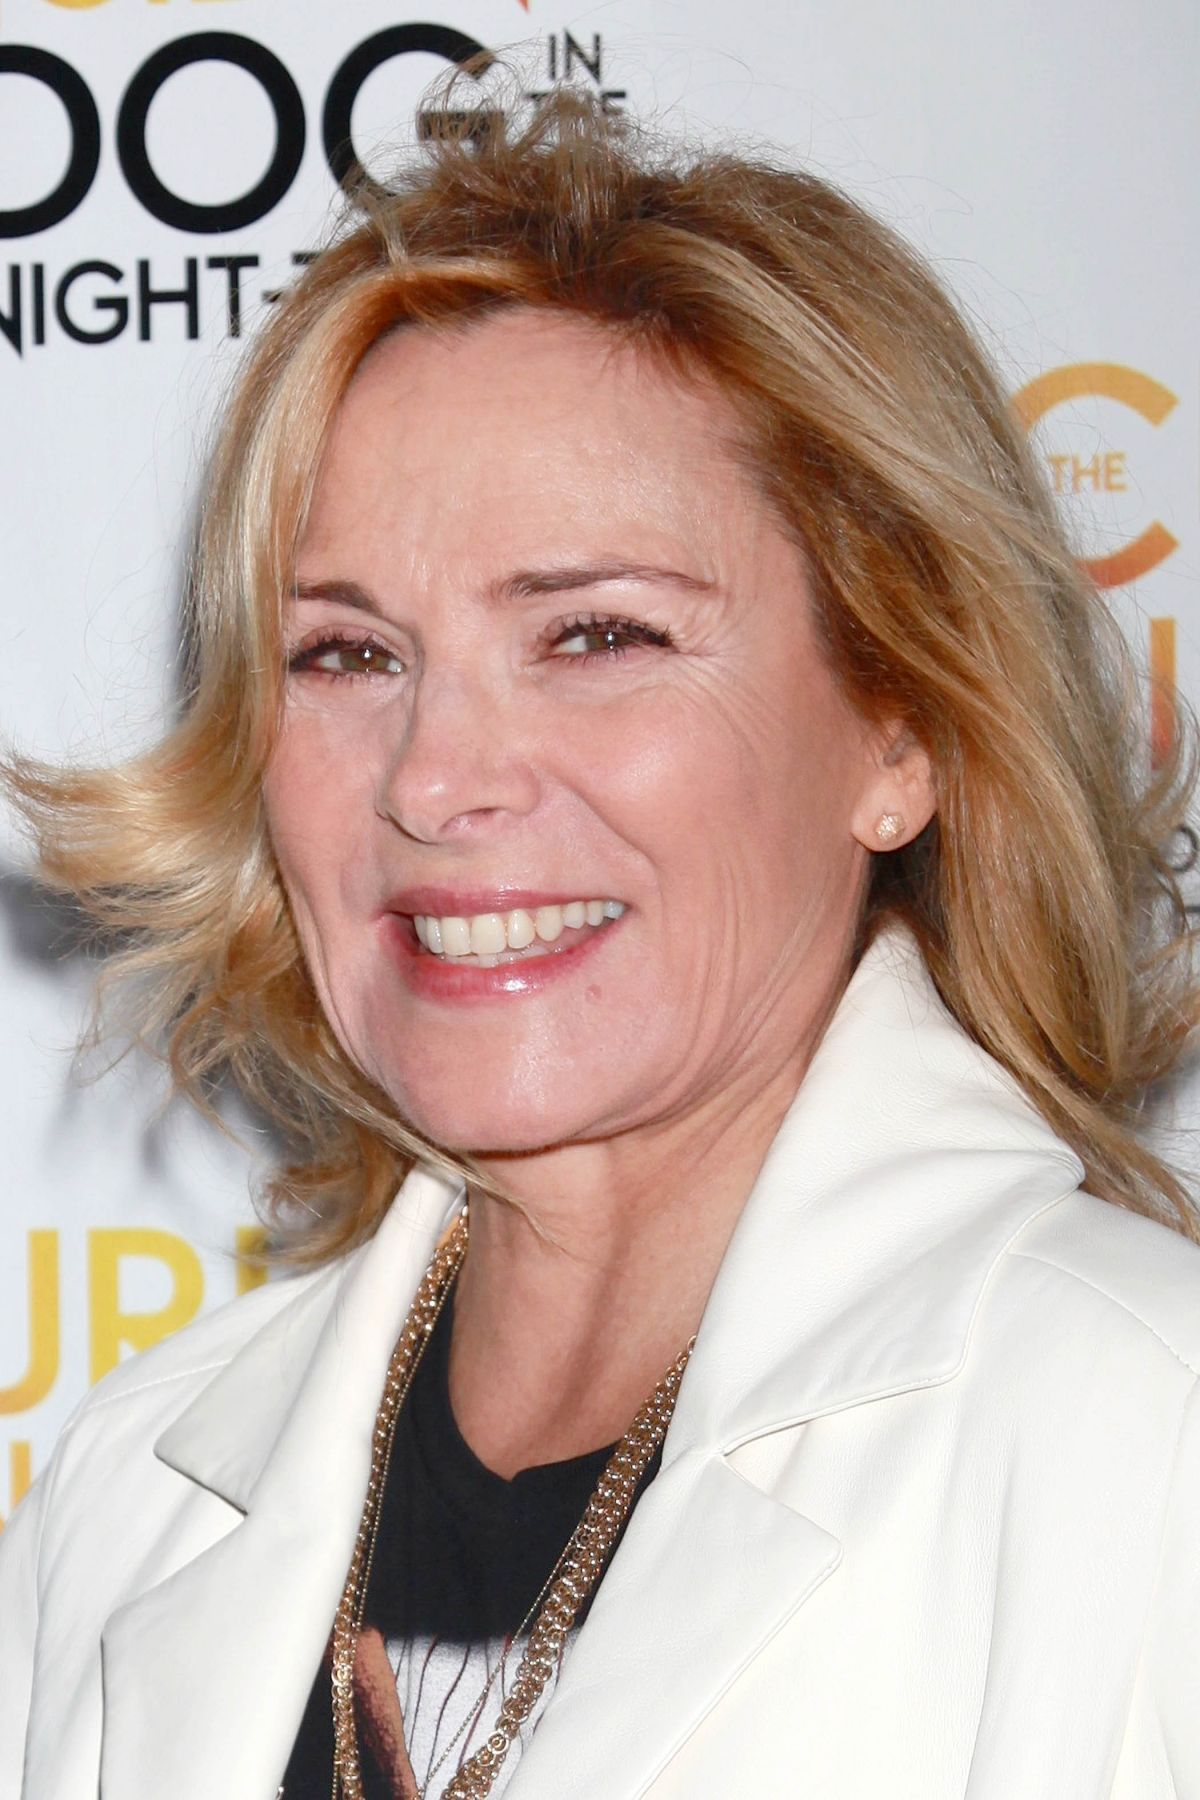 Kim Cattrall Attends The 'The Curious Incident Of The Dog In The ... Kim Cattrall